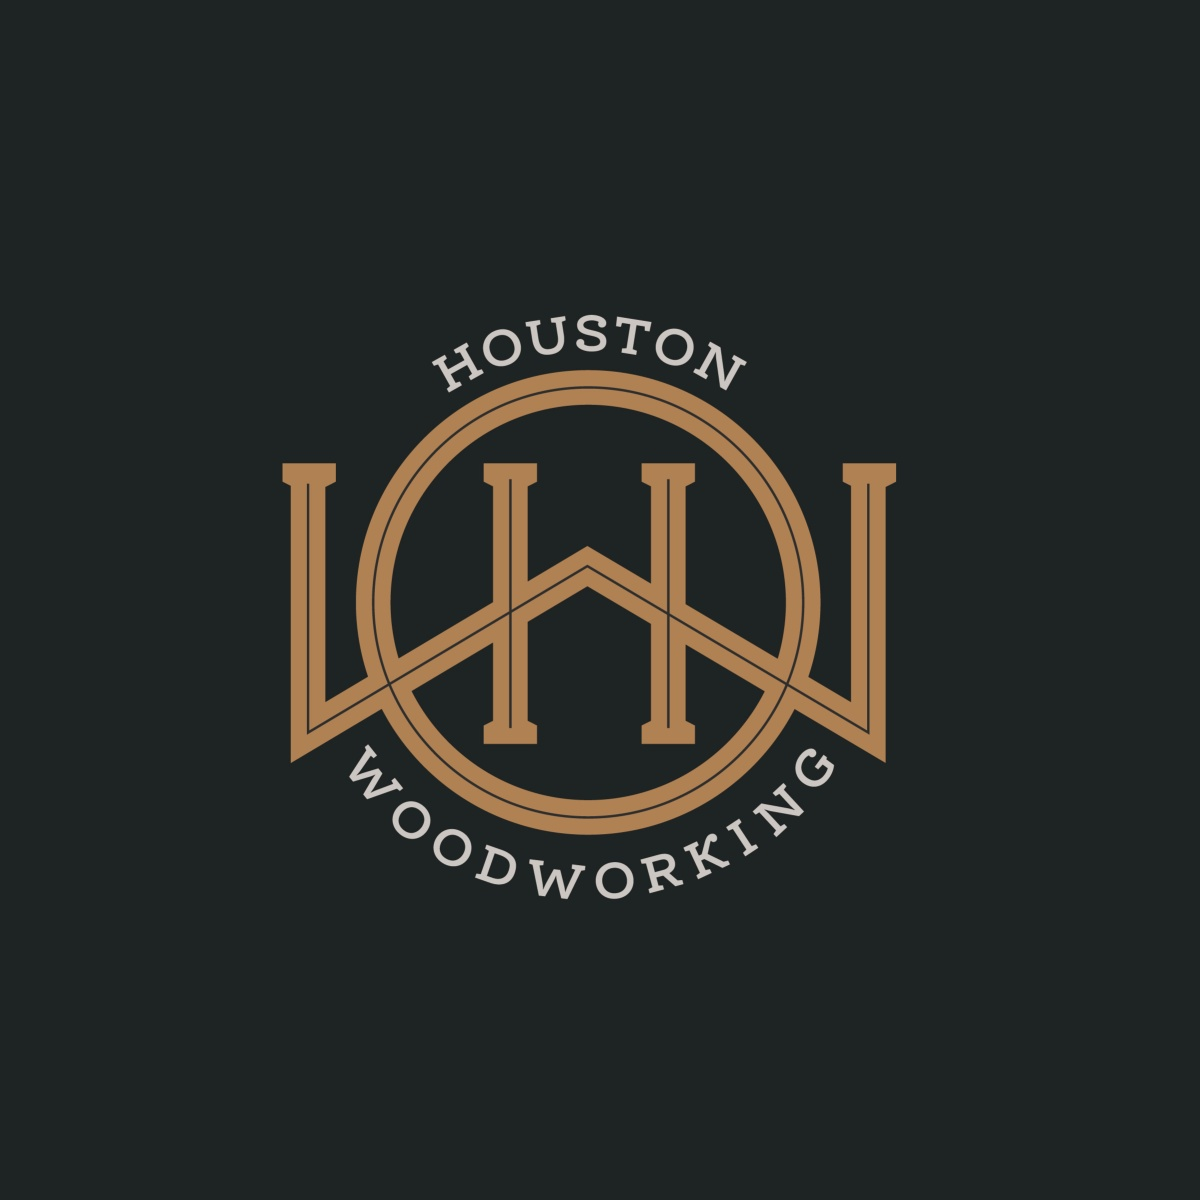 Houston Woodworking is Open for Business